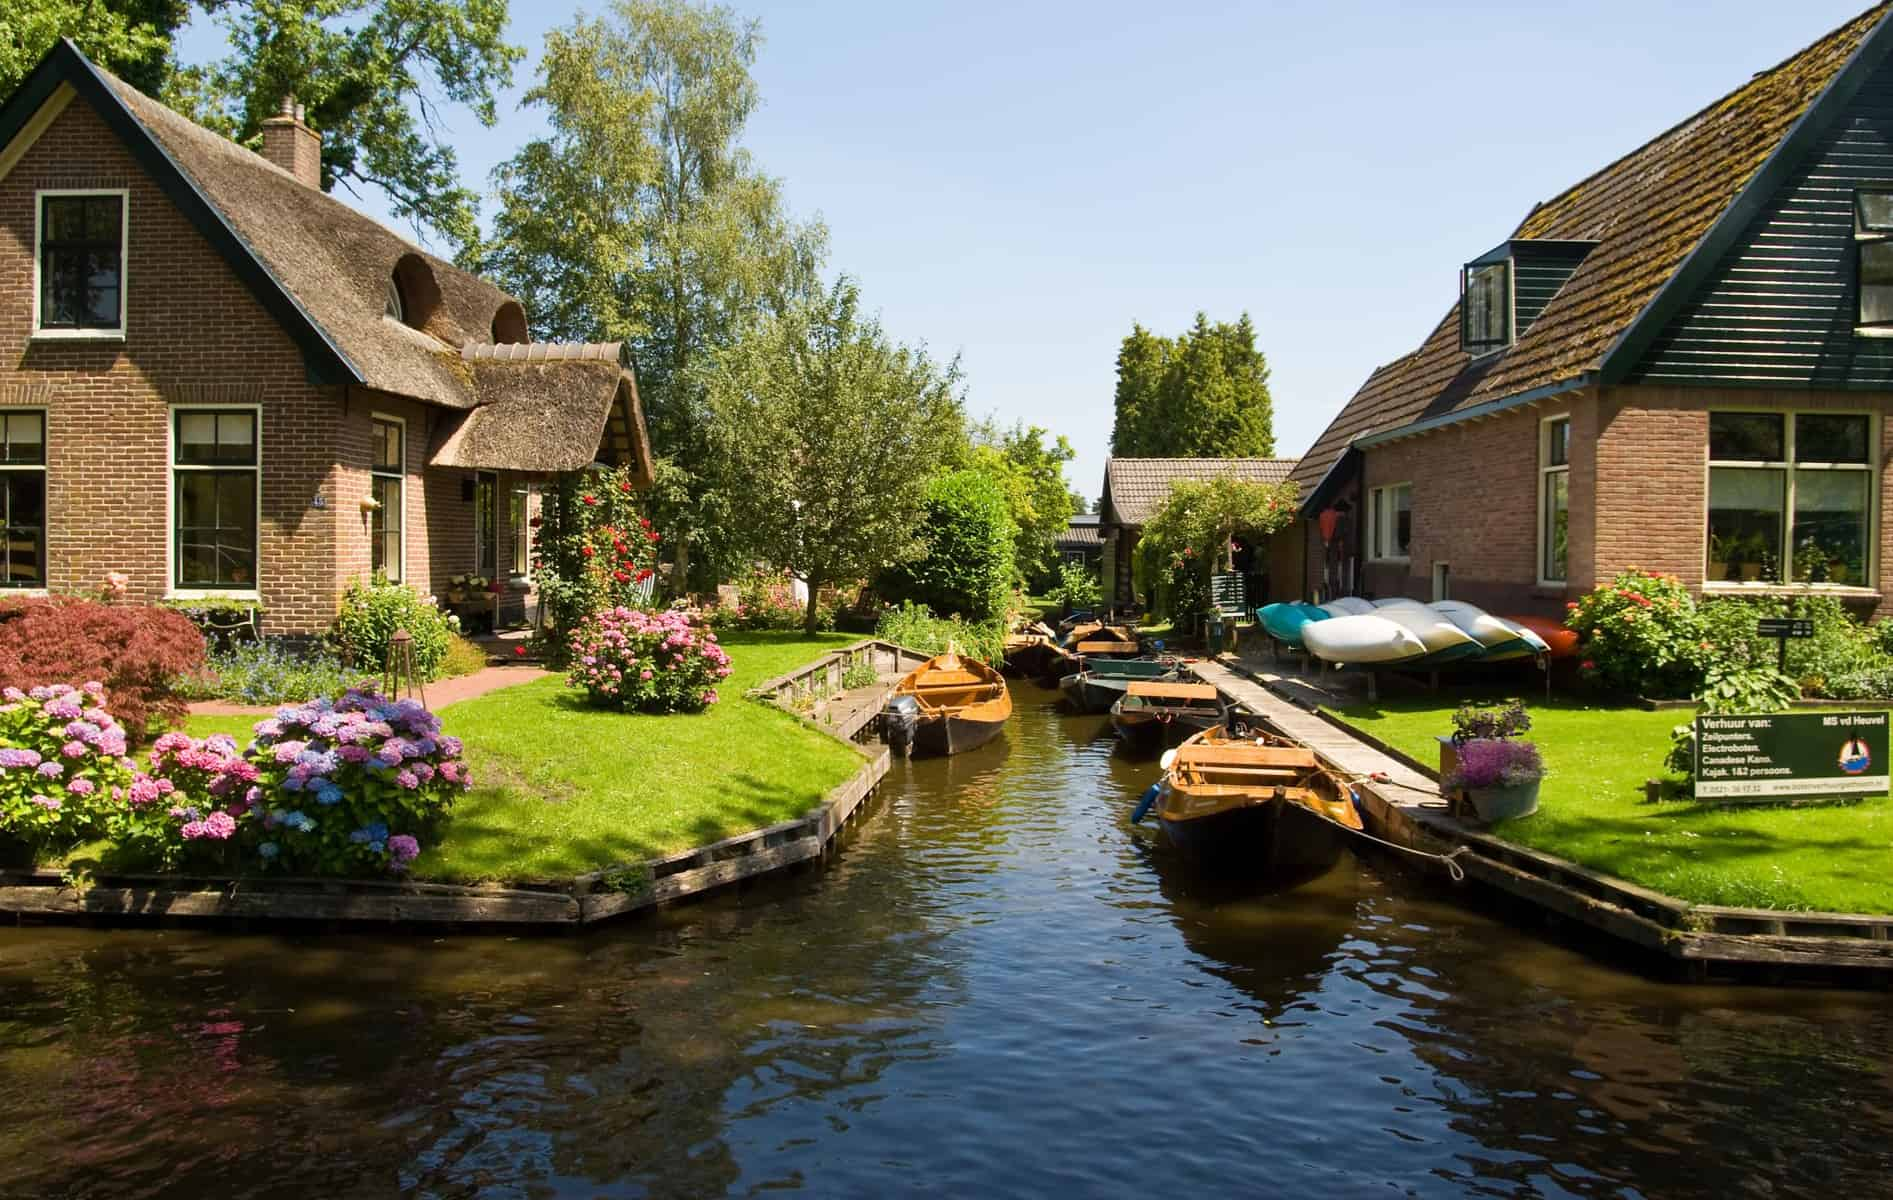 Wanderful village of Giethoorn 15